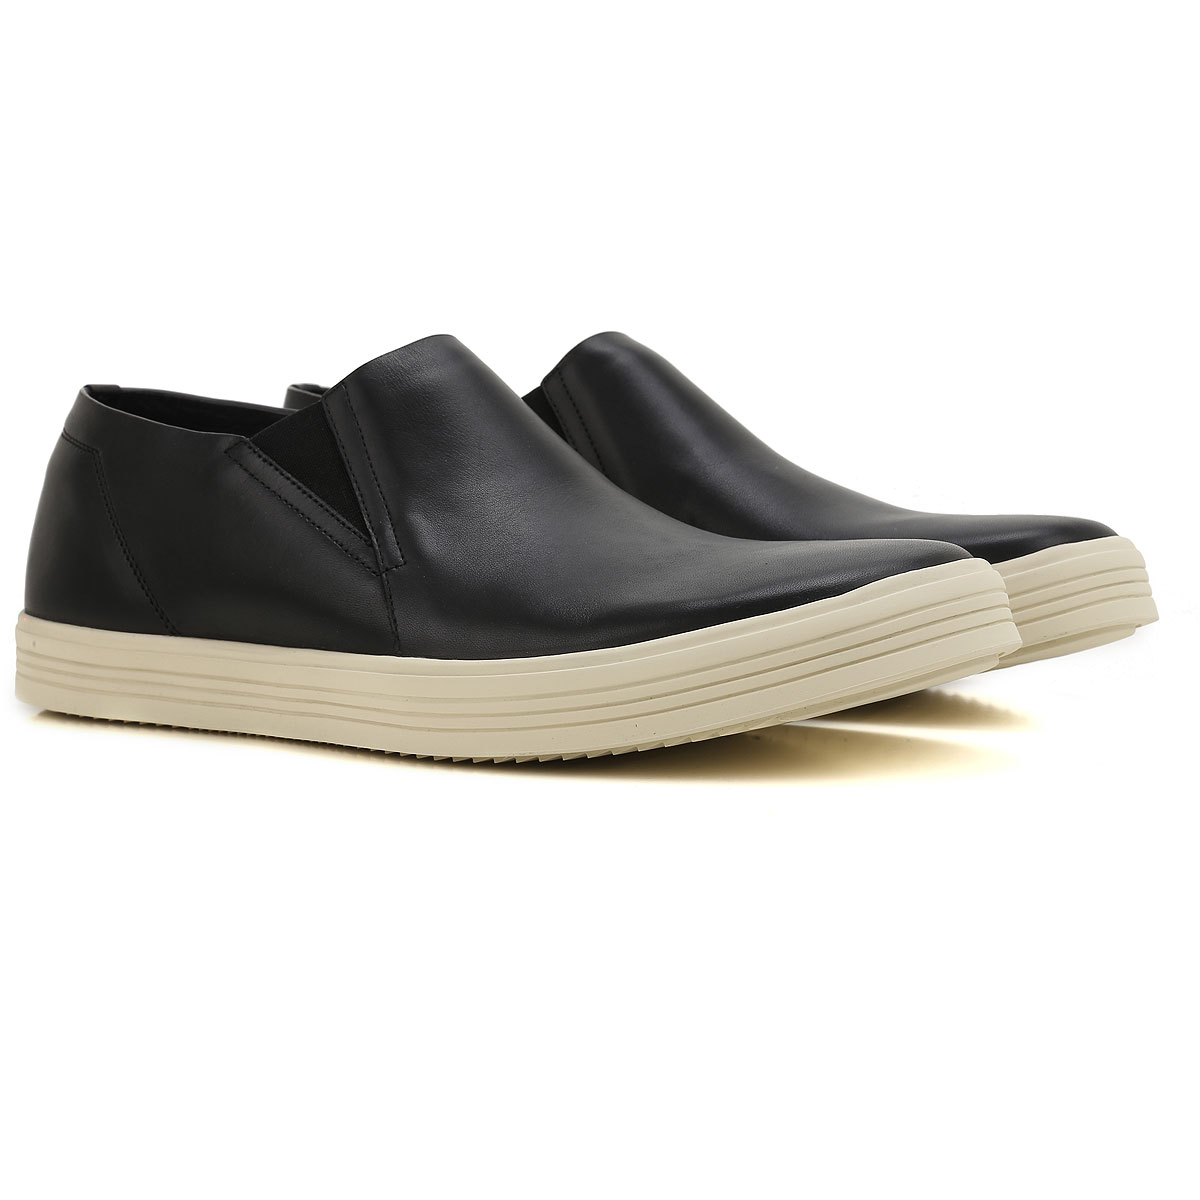 Rick Owens Slip on Sneakers for Men On Sale in Outlet, Black, Leather, 2019, 6.5 7.75